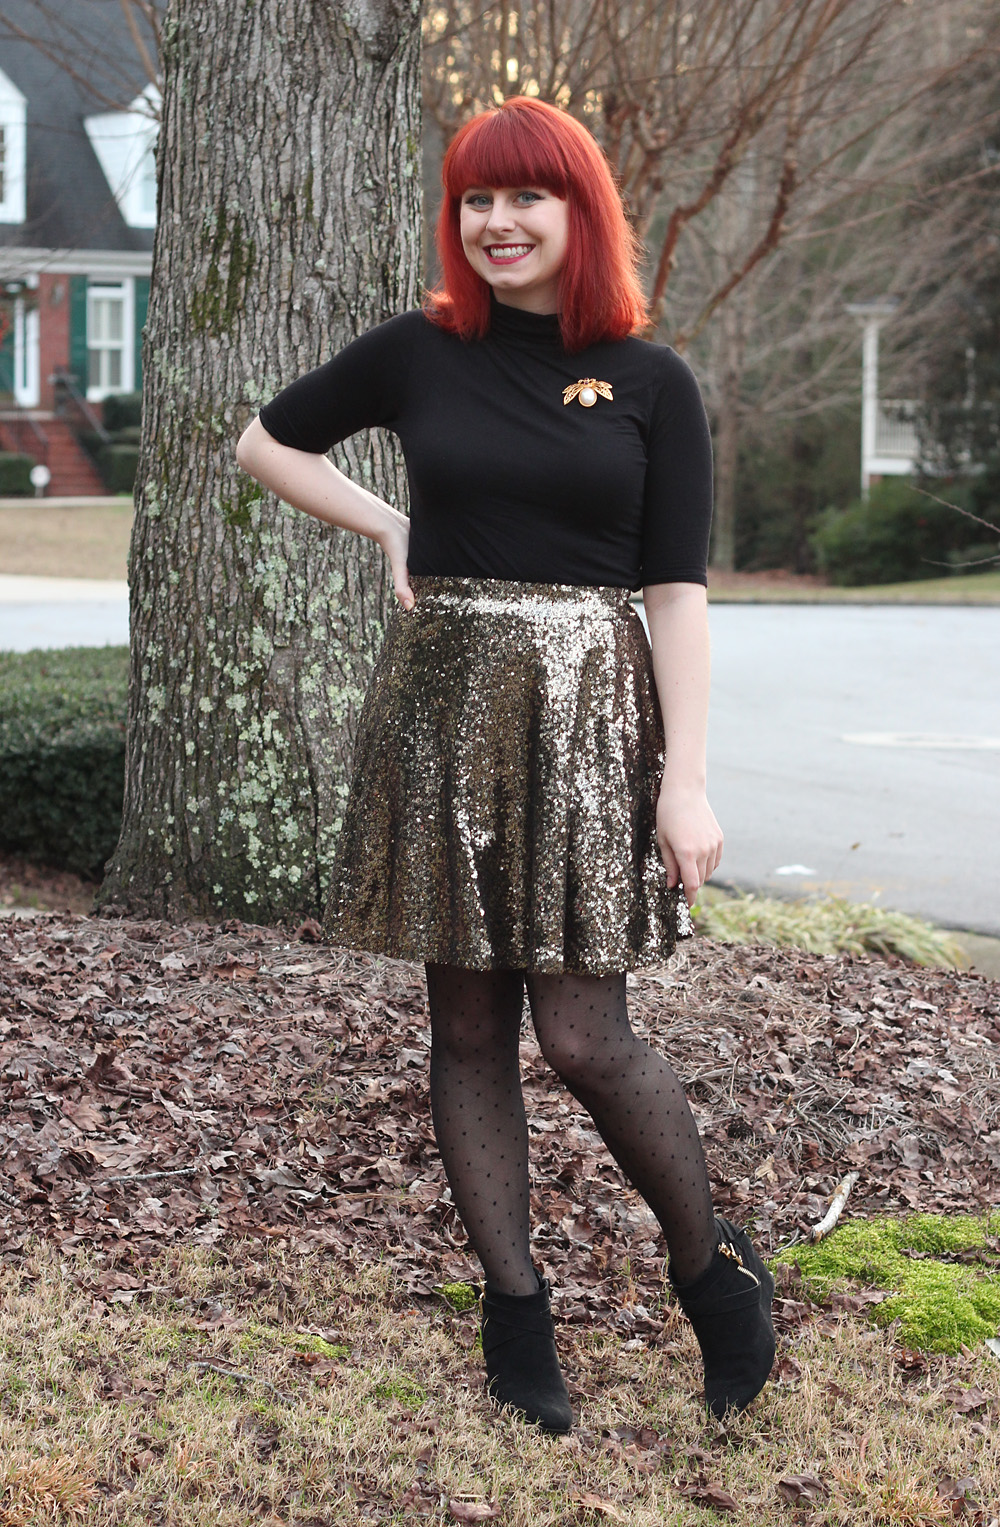 New Year's Look: Gold Sequined Skater Skirt, Black Short Sleeved Turtleneck, Dotted Tights, and Wedge Boots